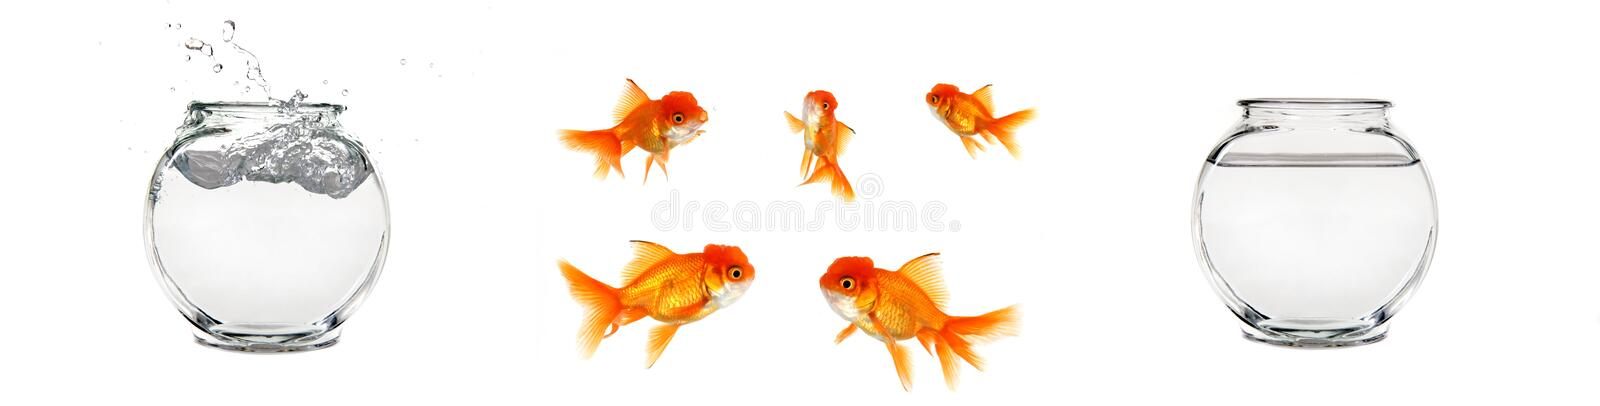 Isolated Goldfish and Bowls stock photos